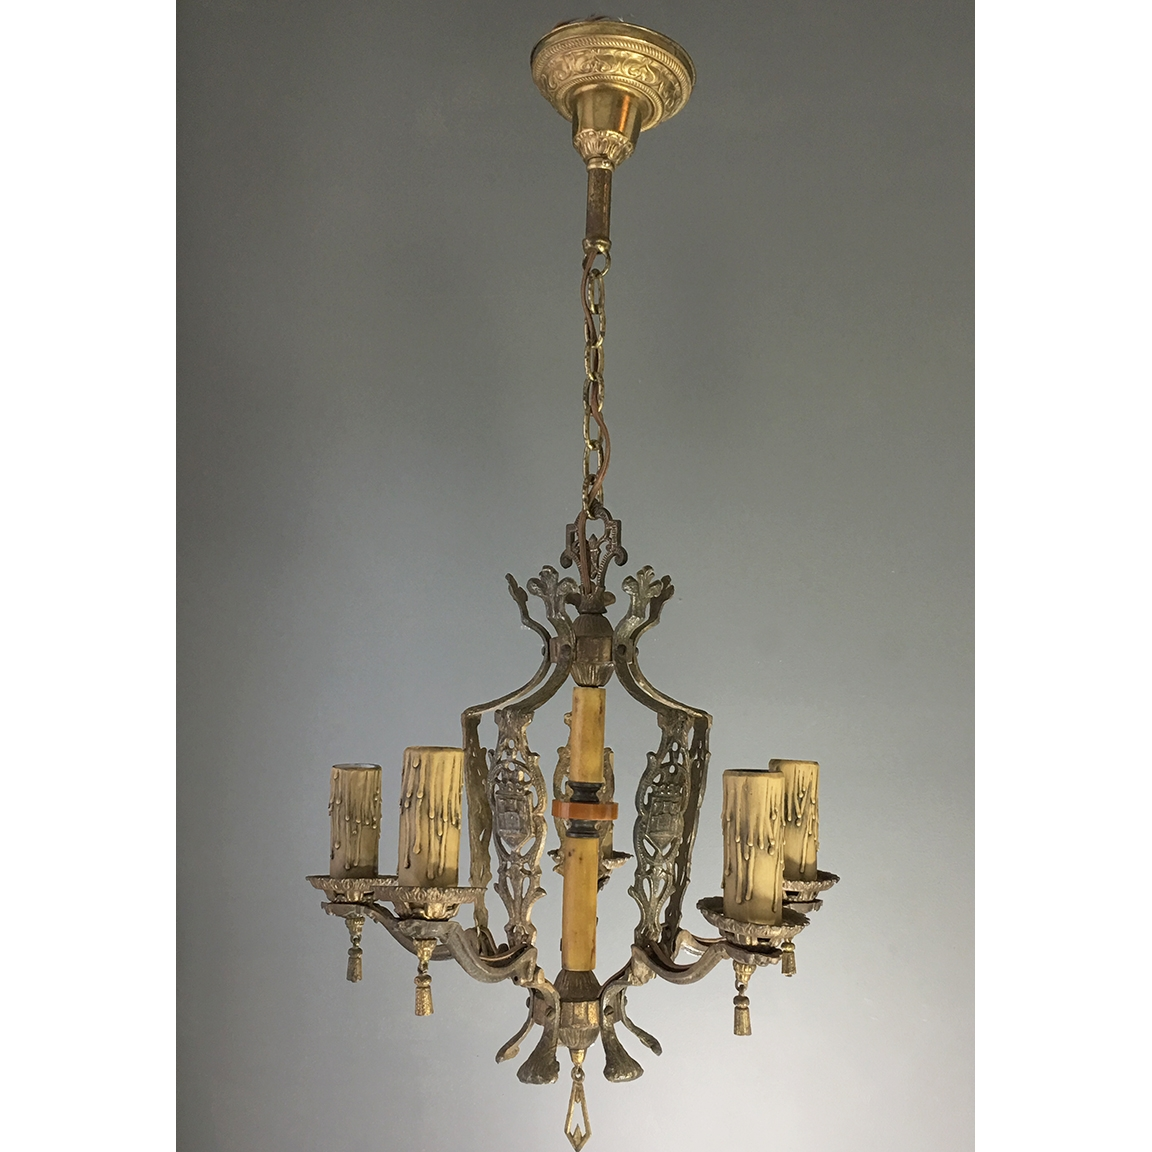 Antique Ceiling Fixtures Pertaining To Cast Iron Antique Chandelier (Image 4 of 15)